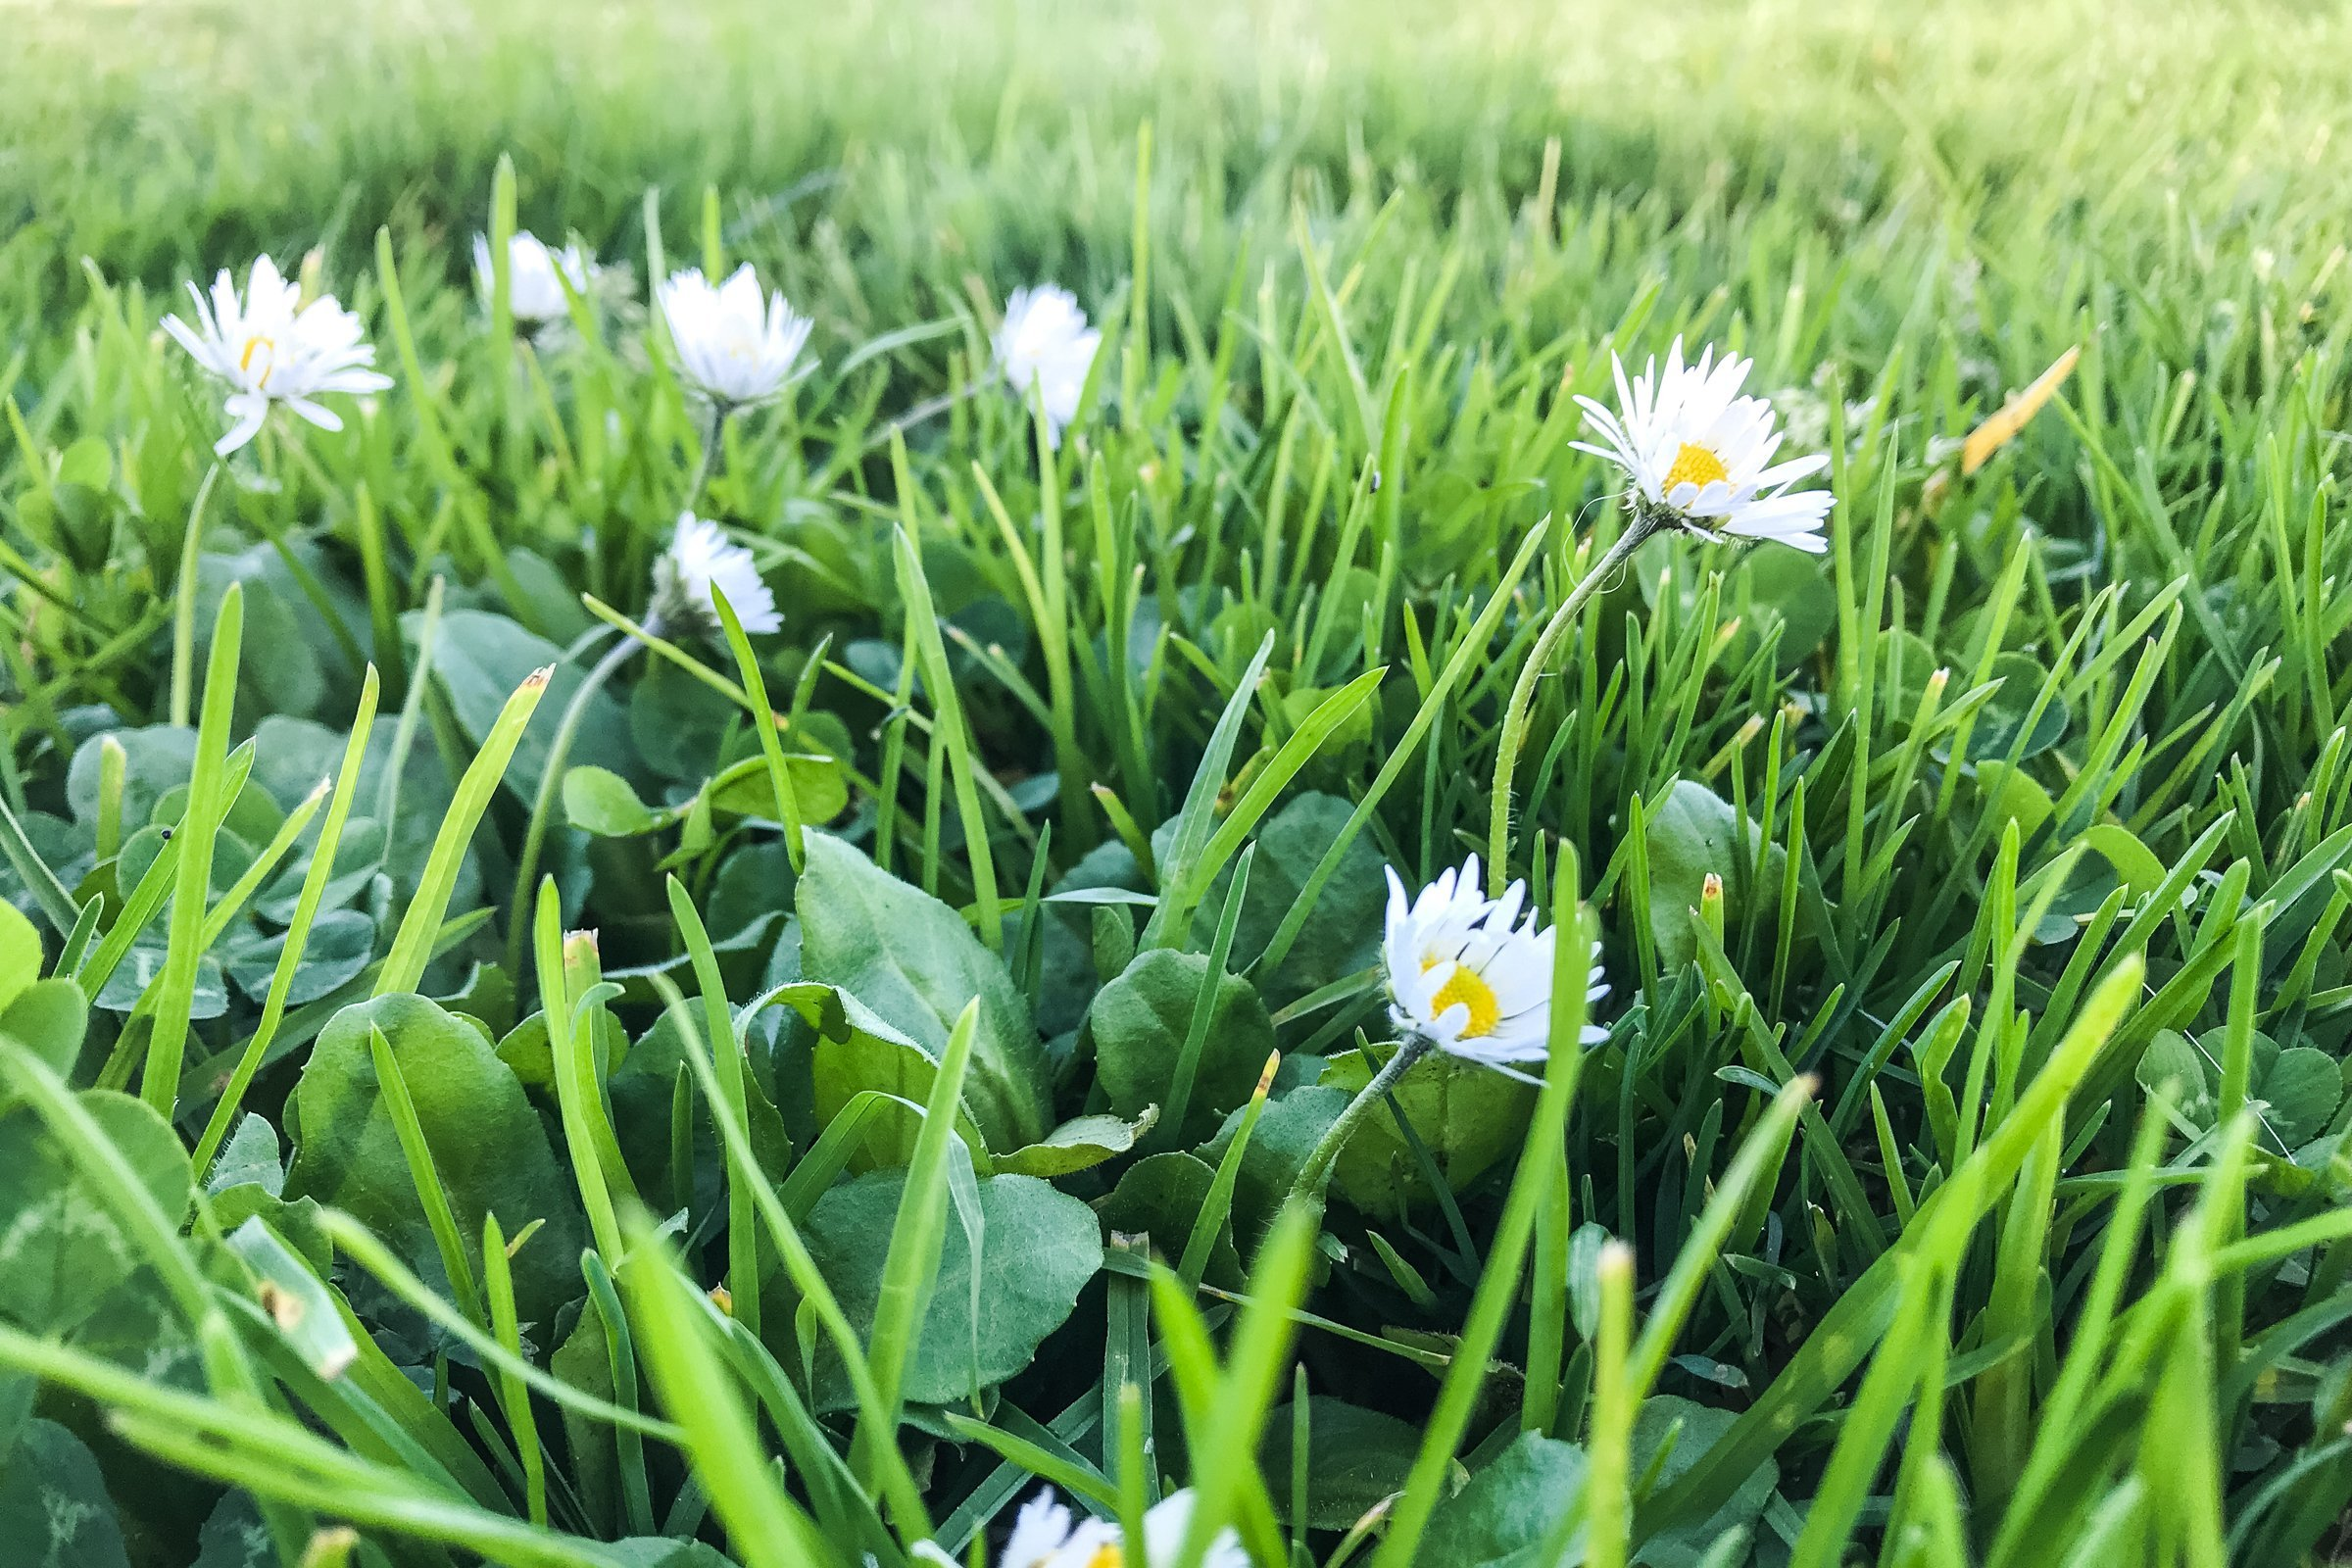 White Daisies Among Grass Leaves